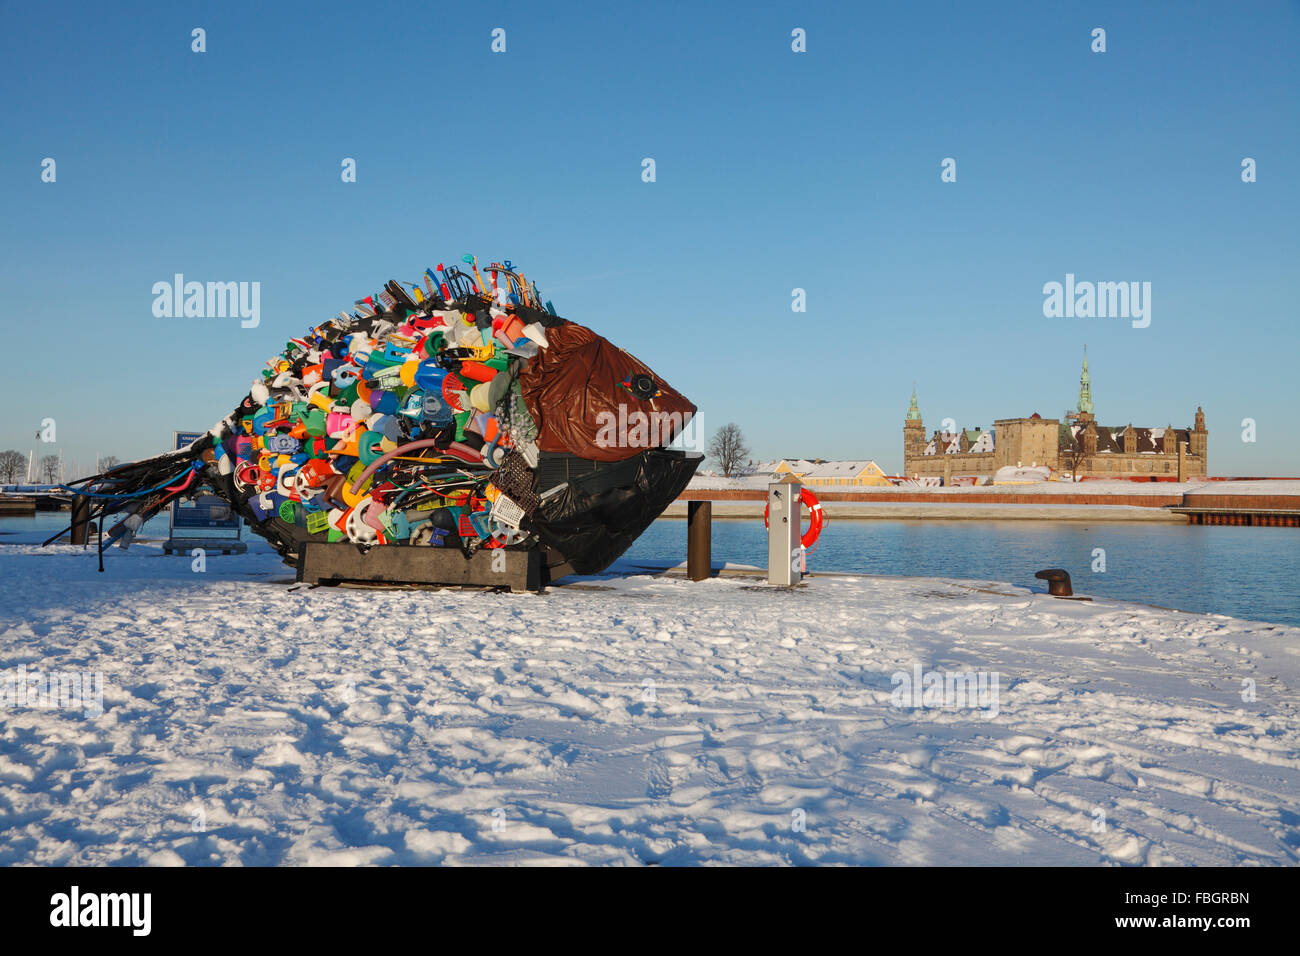 The giant fish, a work of street art made of garbage and old plastic items in snow-covered Elsinore Harbour, the - Stock Image